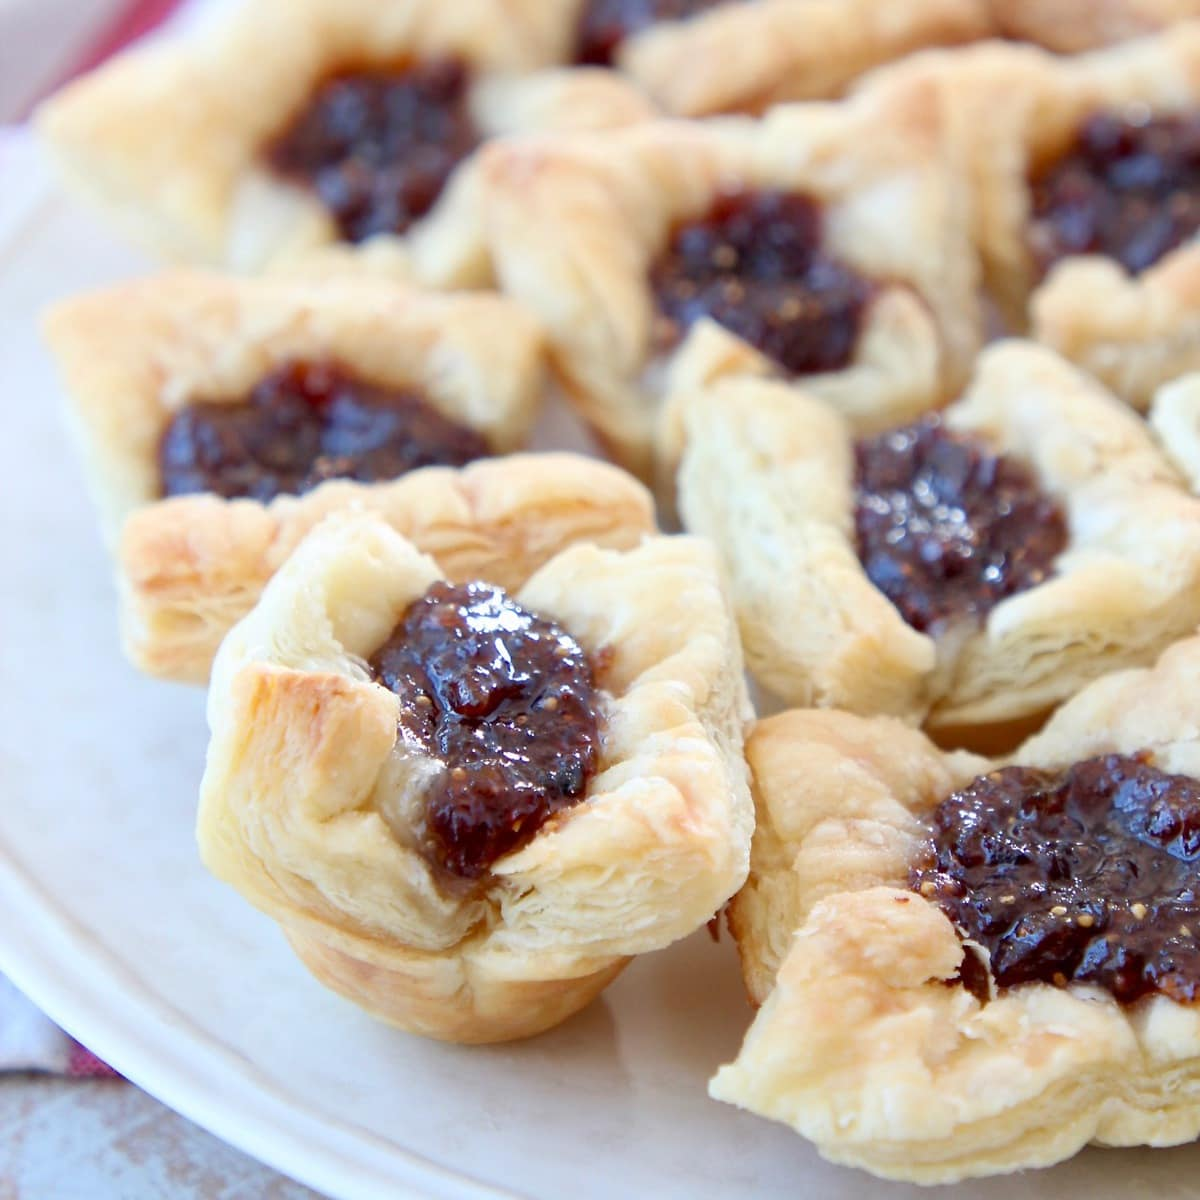 Fig jam and brie in baked puff pastry bites on plate